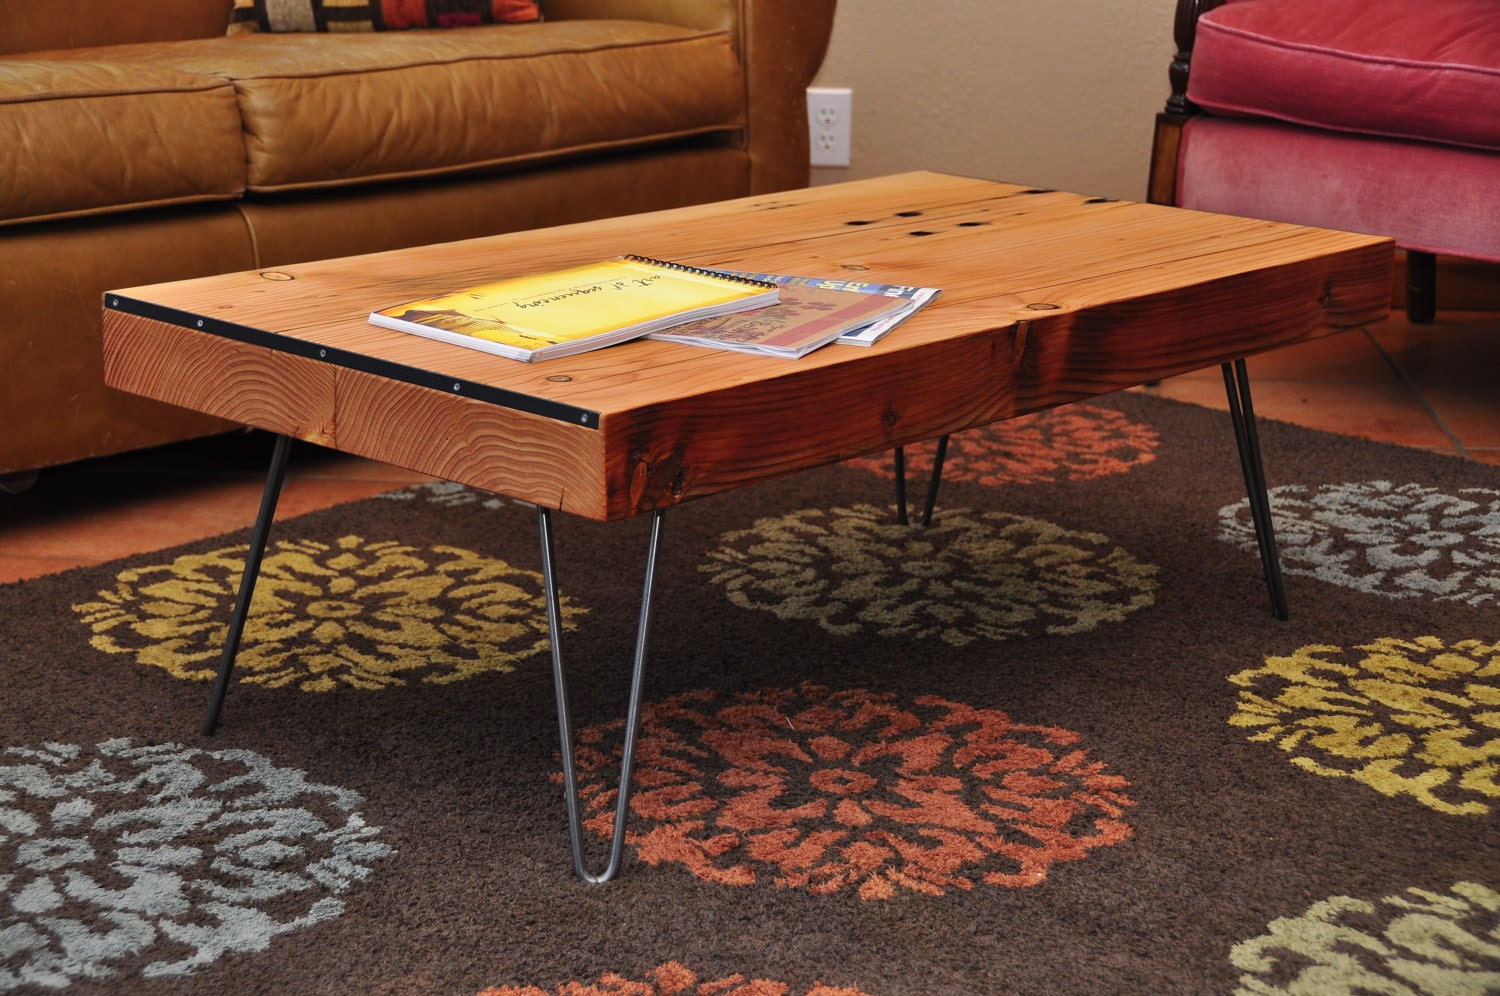 Reclaimed Wood Coffee Table With Hairpin Legs By Zacklodato